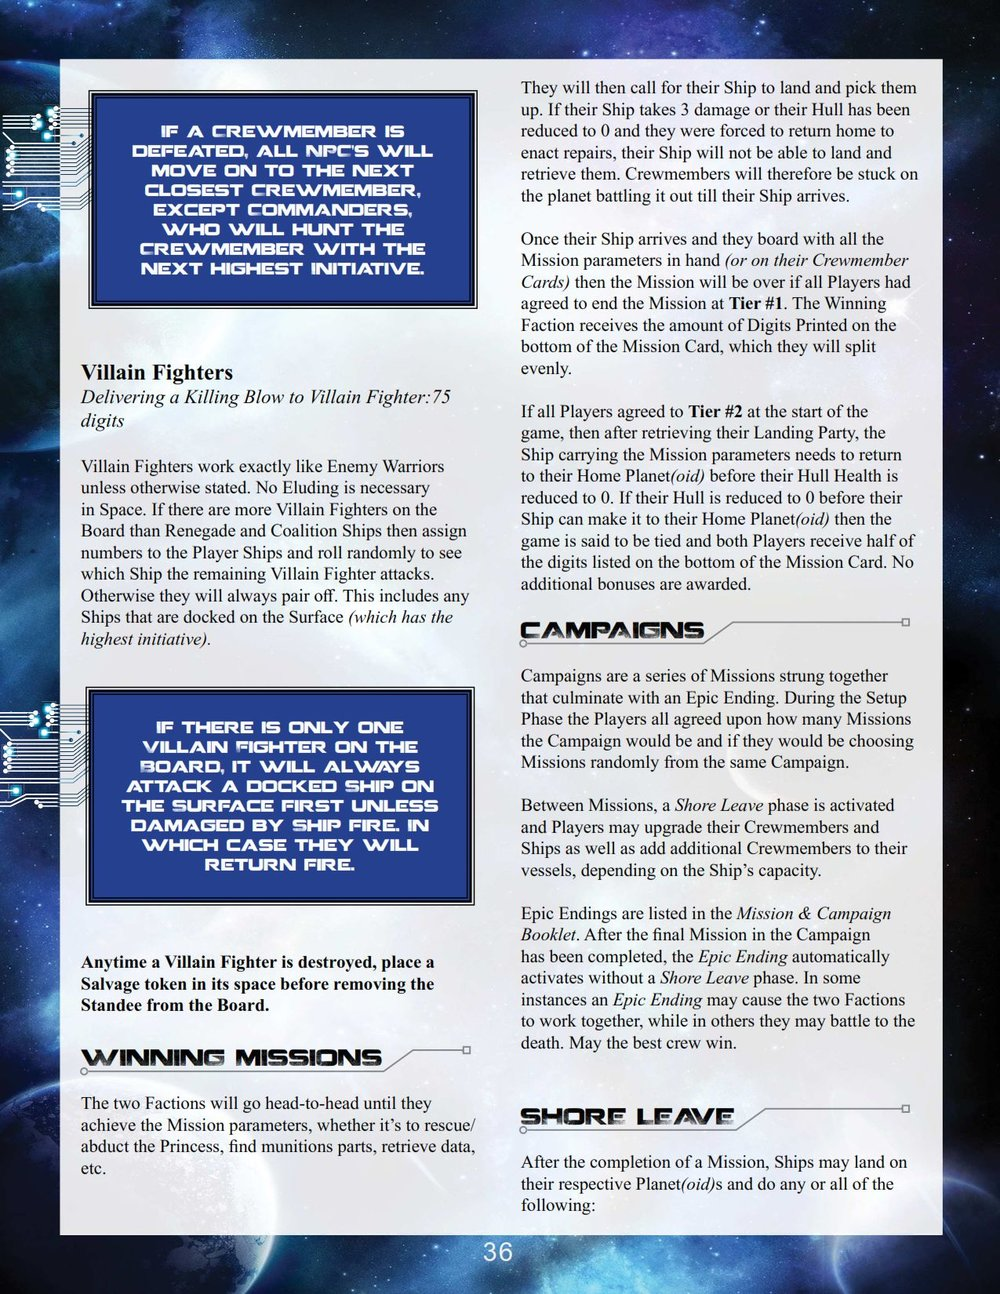 Renegades_Rule_Book_037.jpg